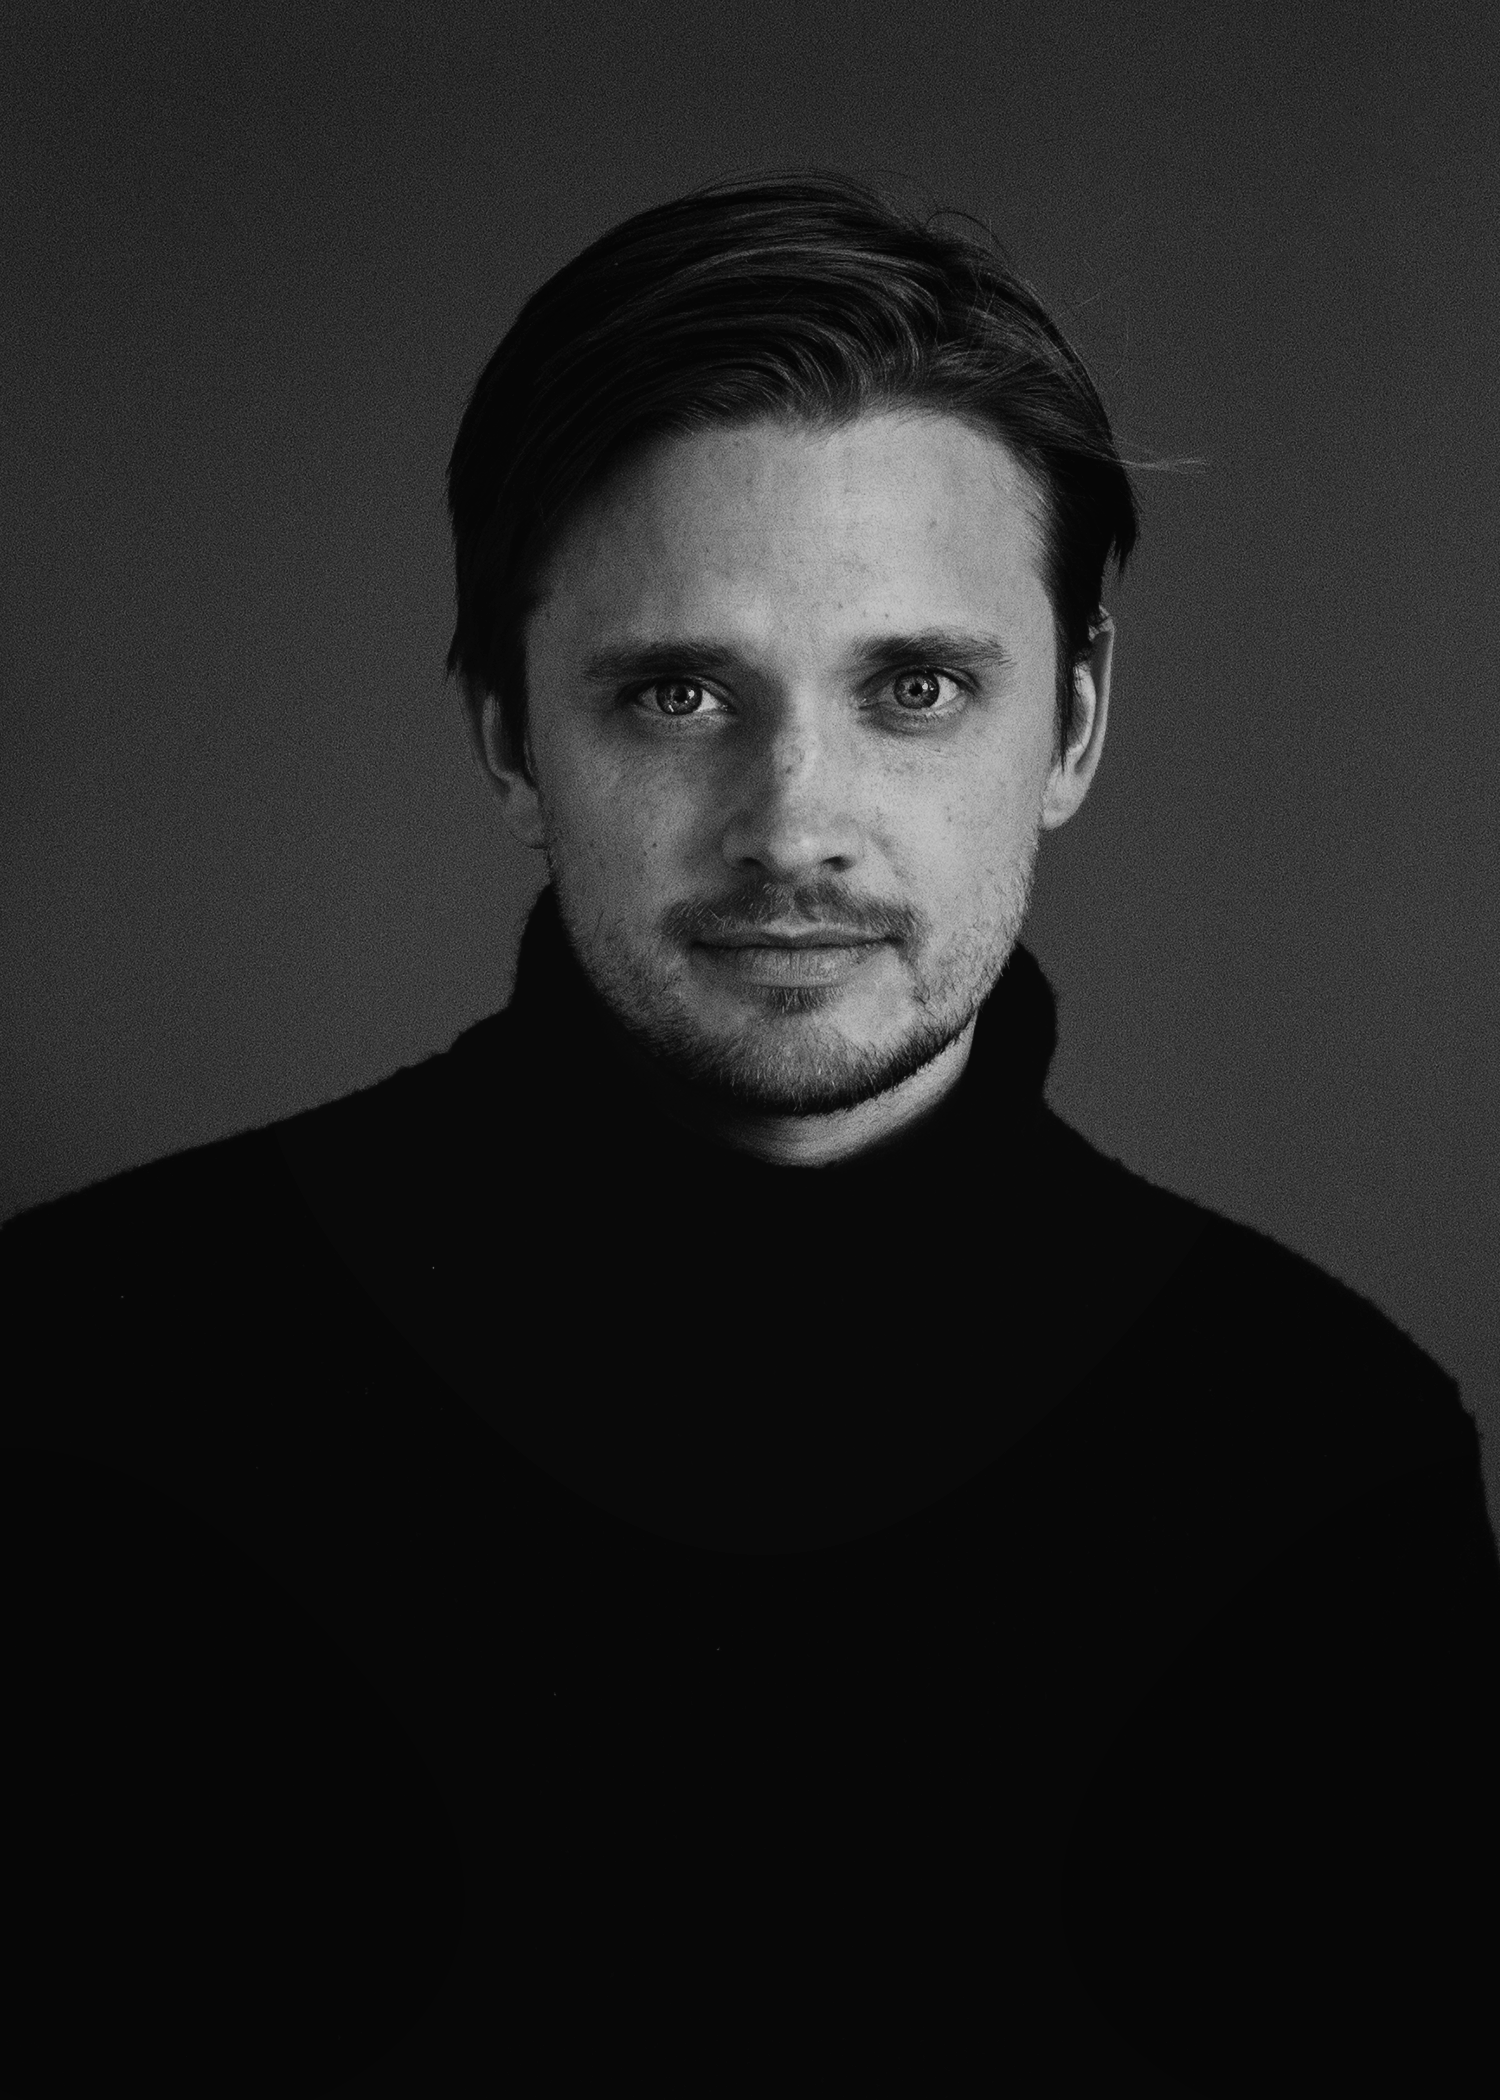 Copy of Rory Kennett-Lister, Creative Director